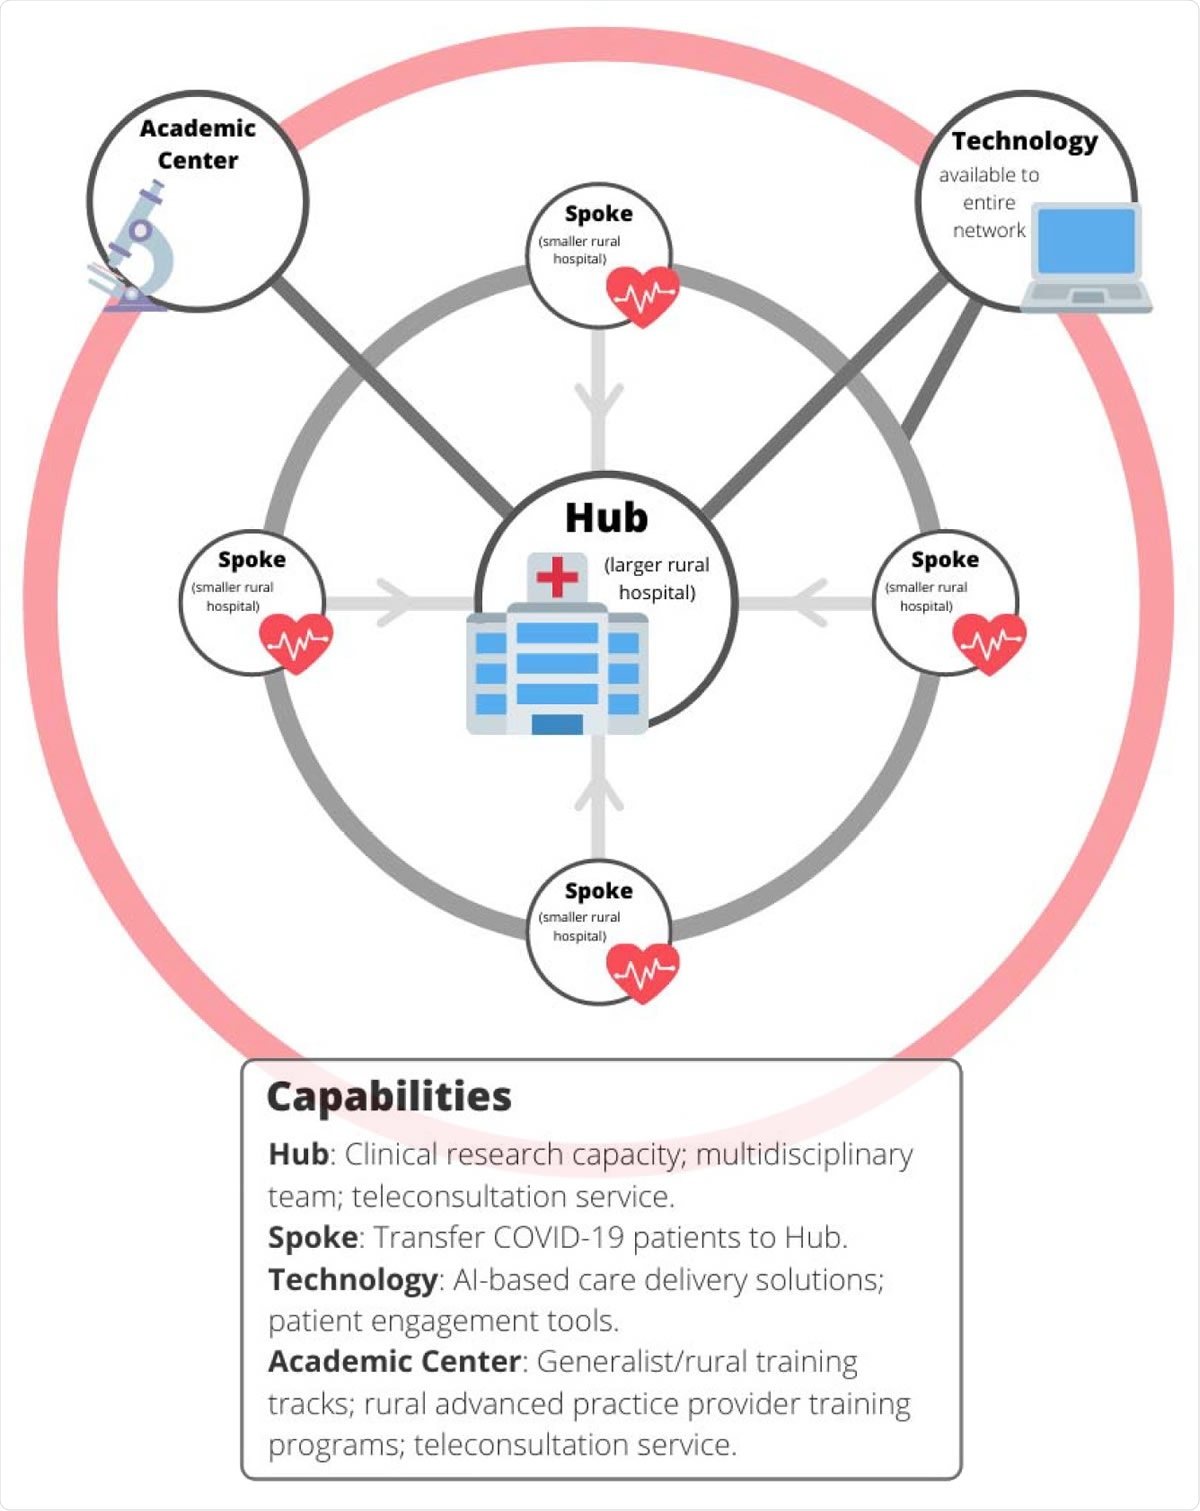 Hub and Spoke model for rural care delivery